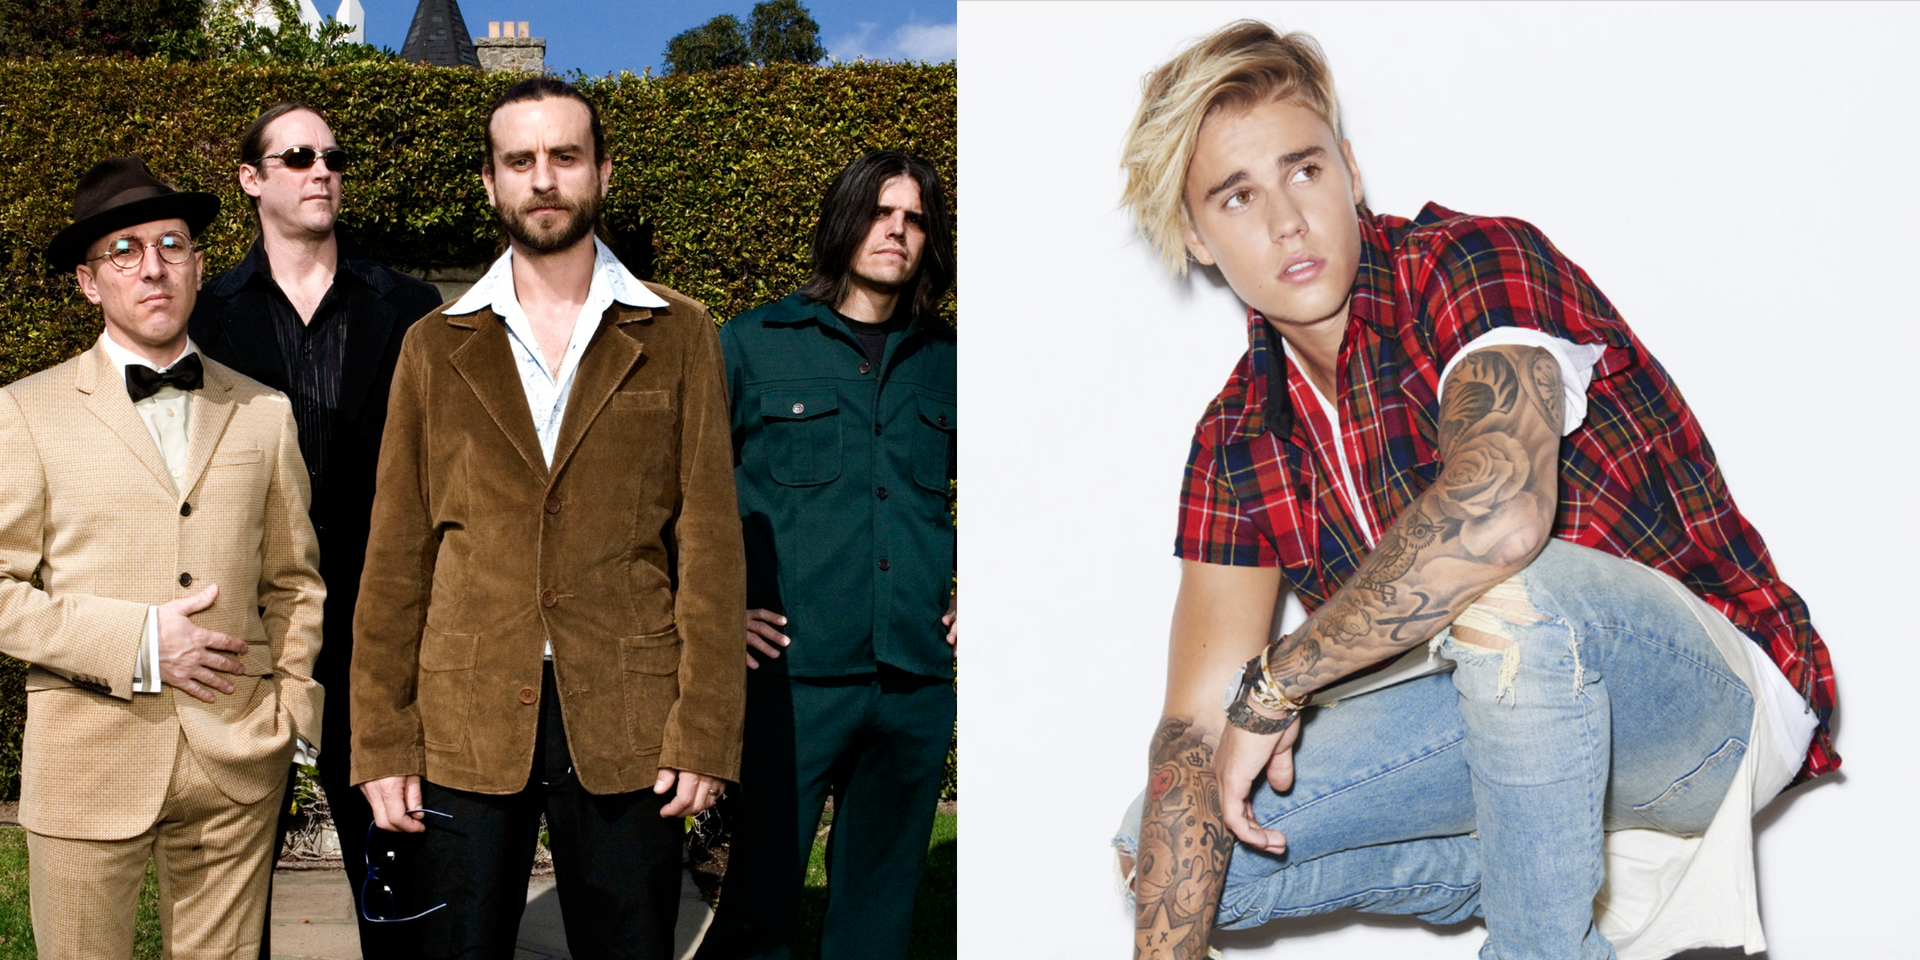 A Tool and Justin Bieber mash-up has surfaced, and it's awesome – watch